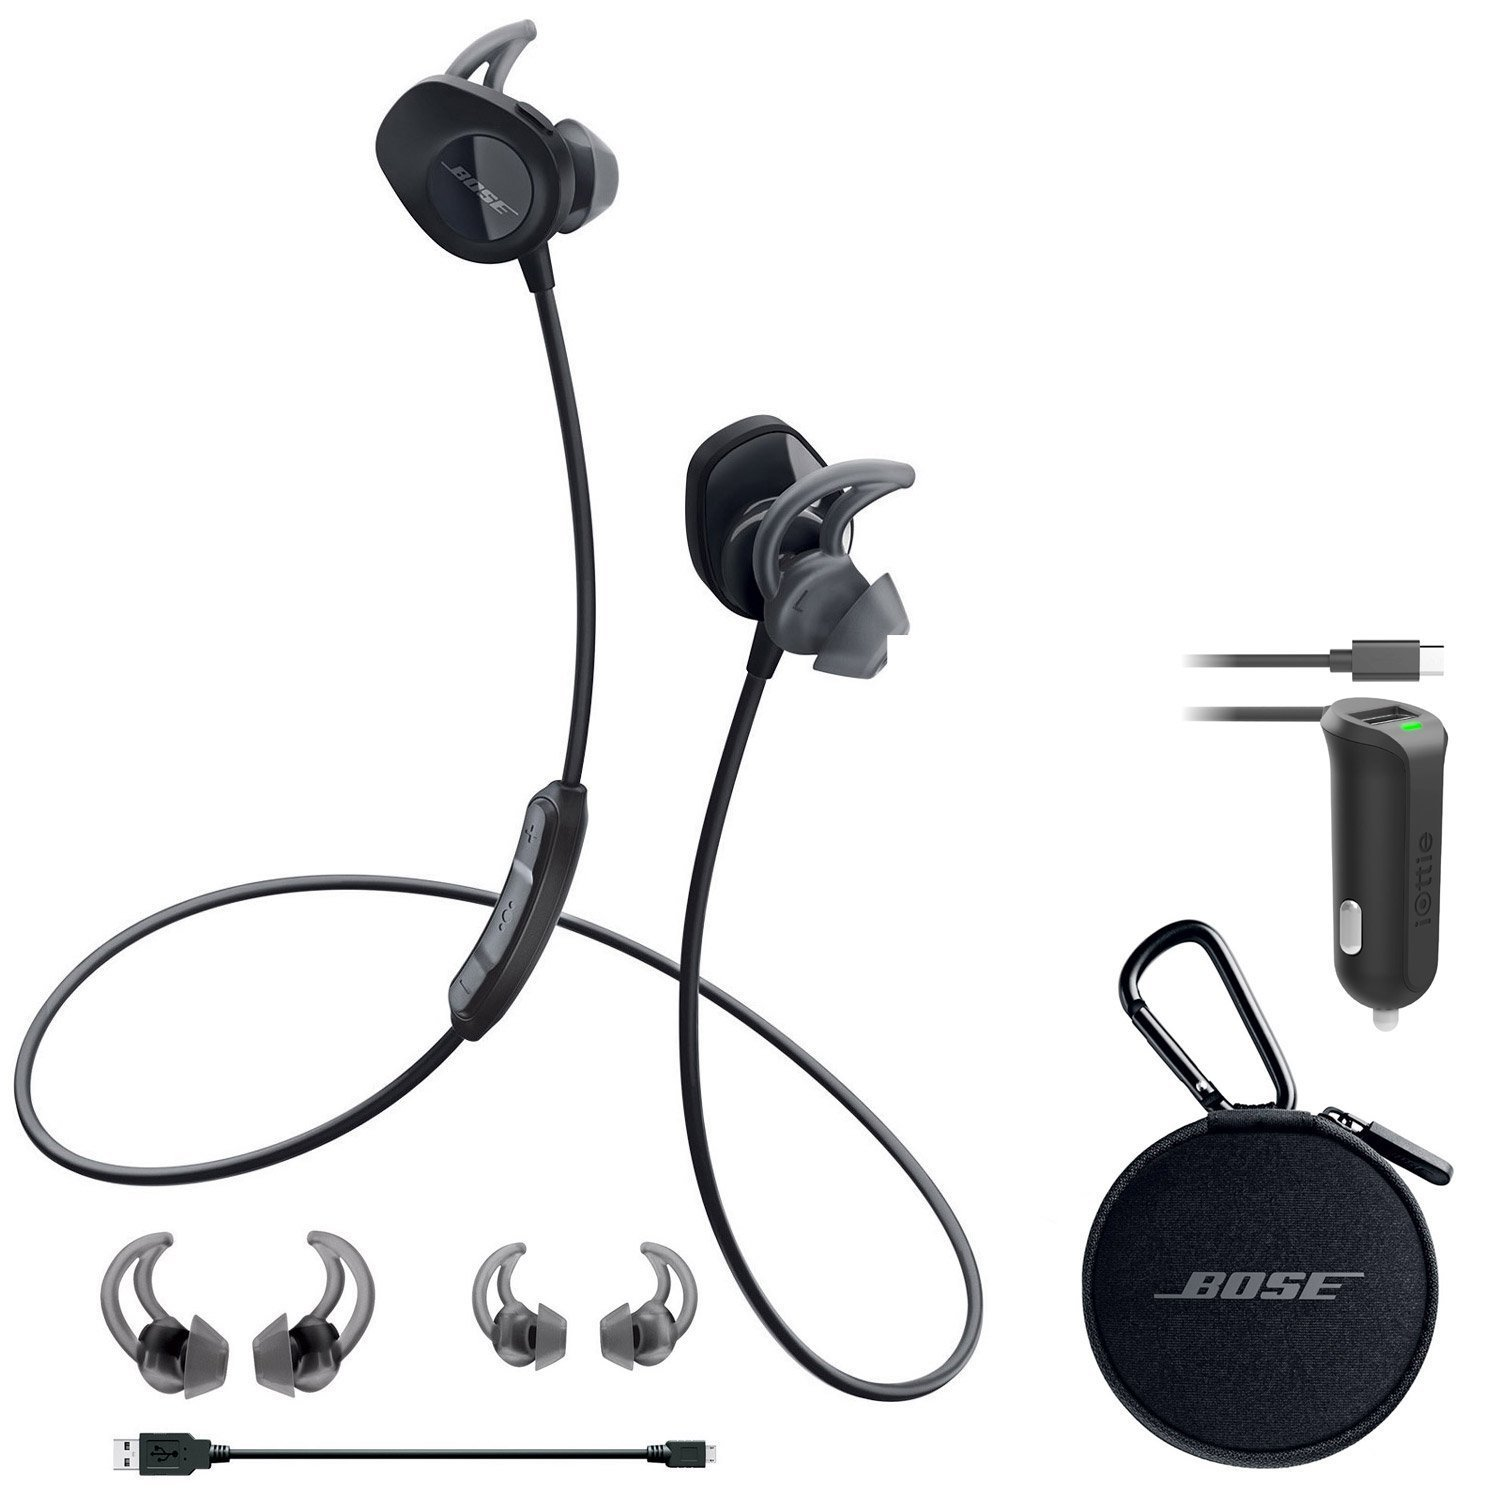 Bose SoundSport Wireless Headphones - Black & Car Charger - Bundle by Bose